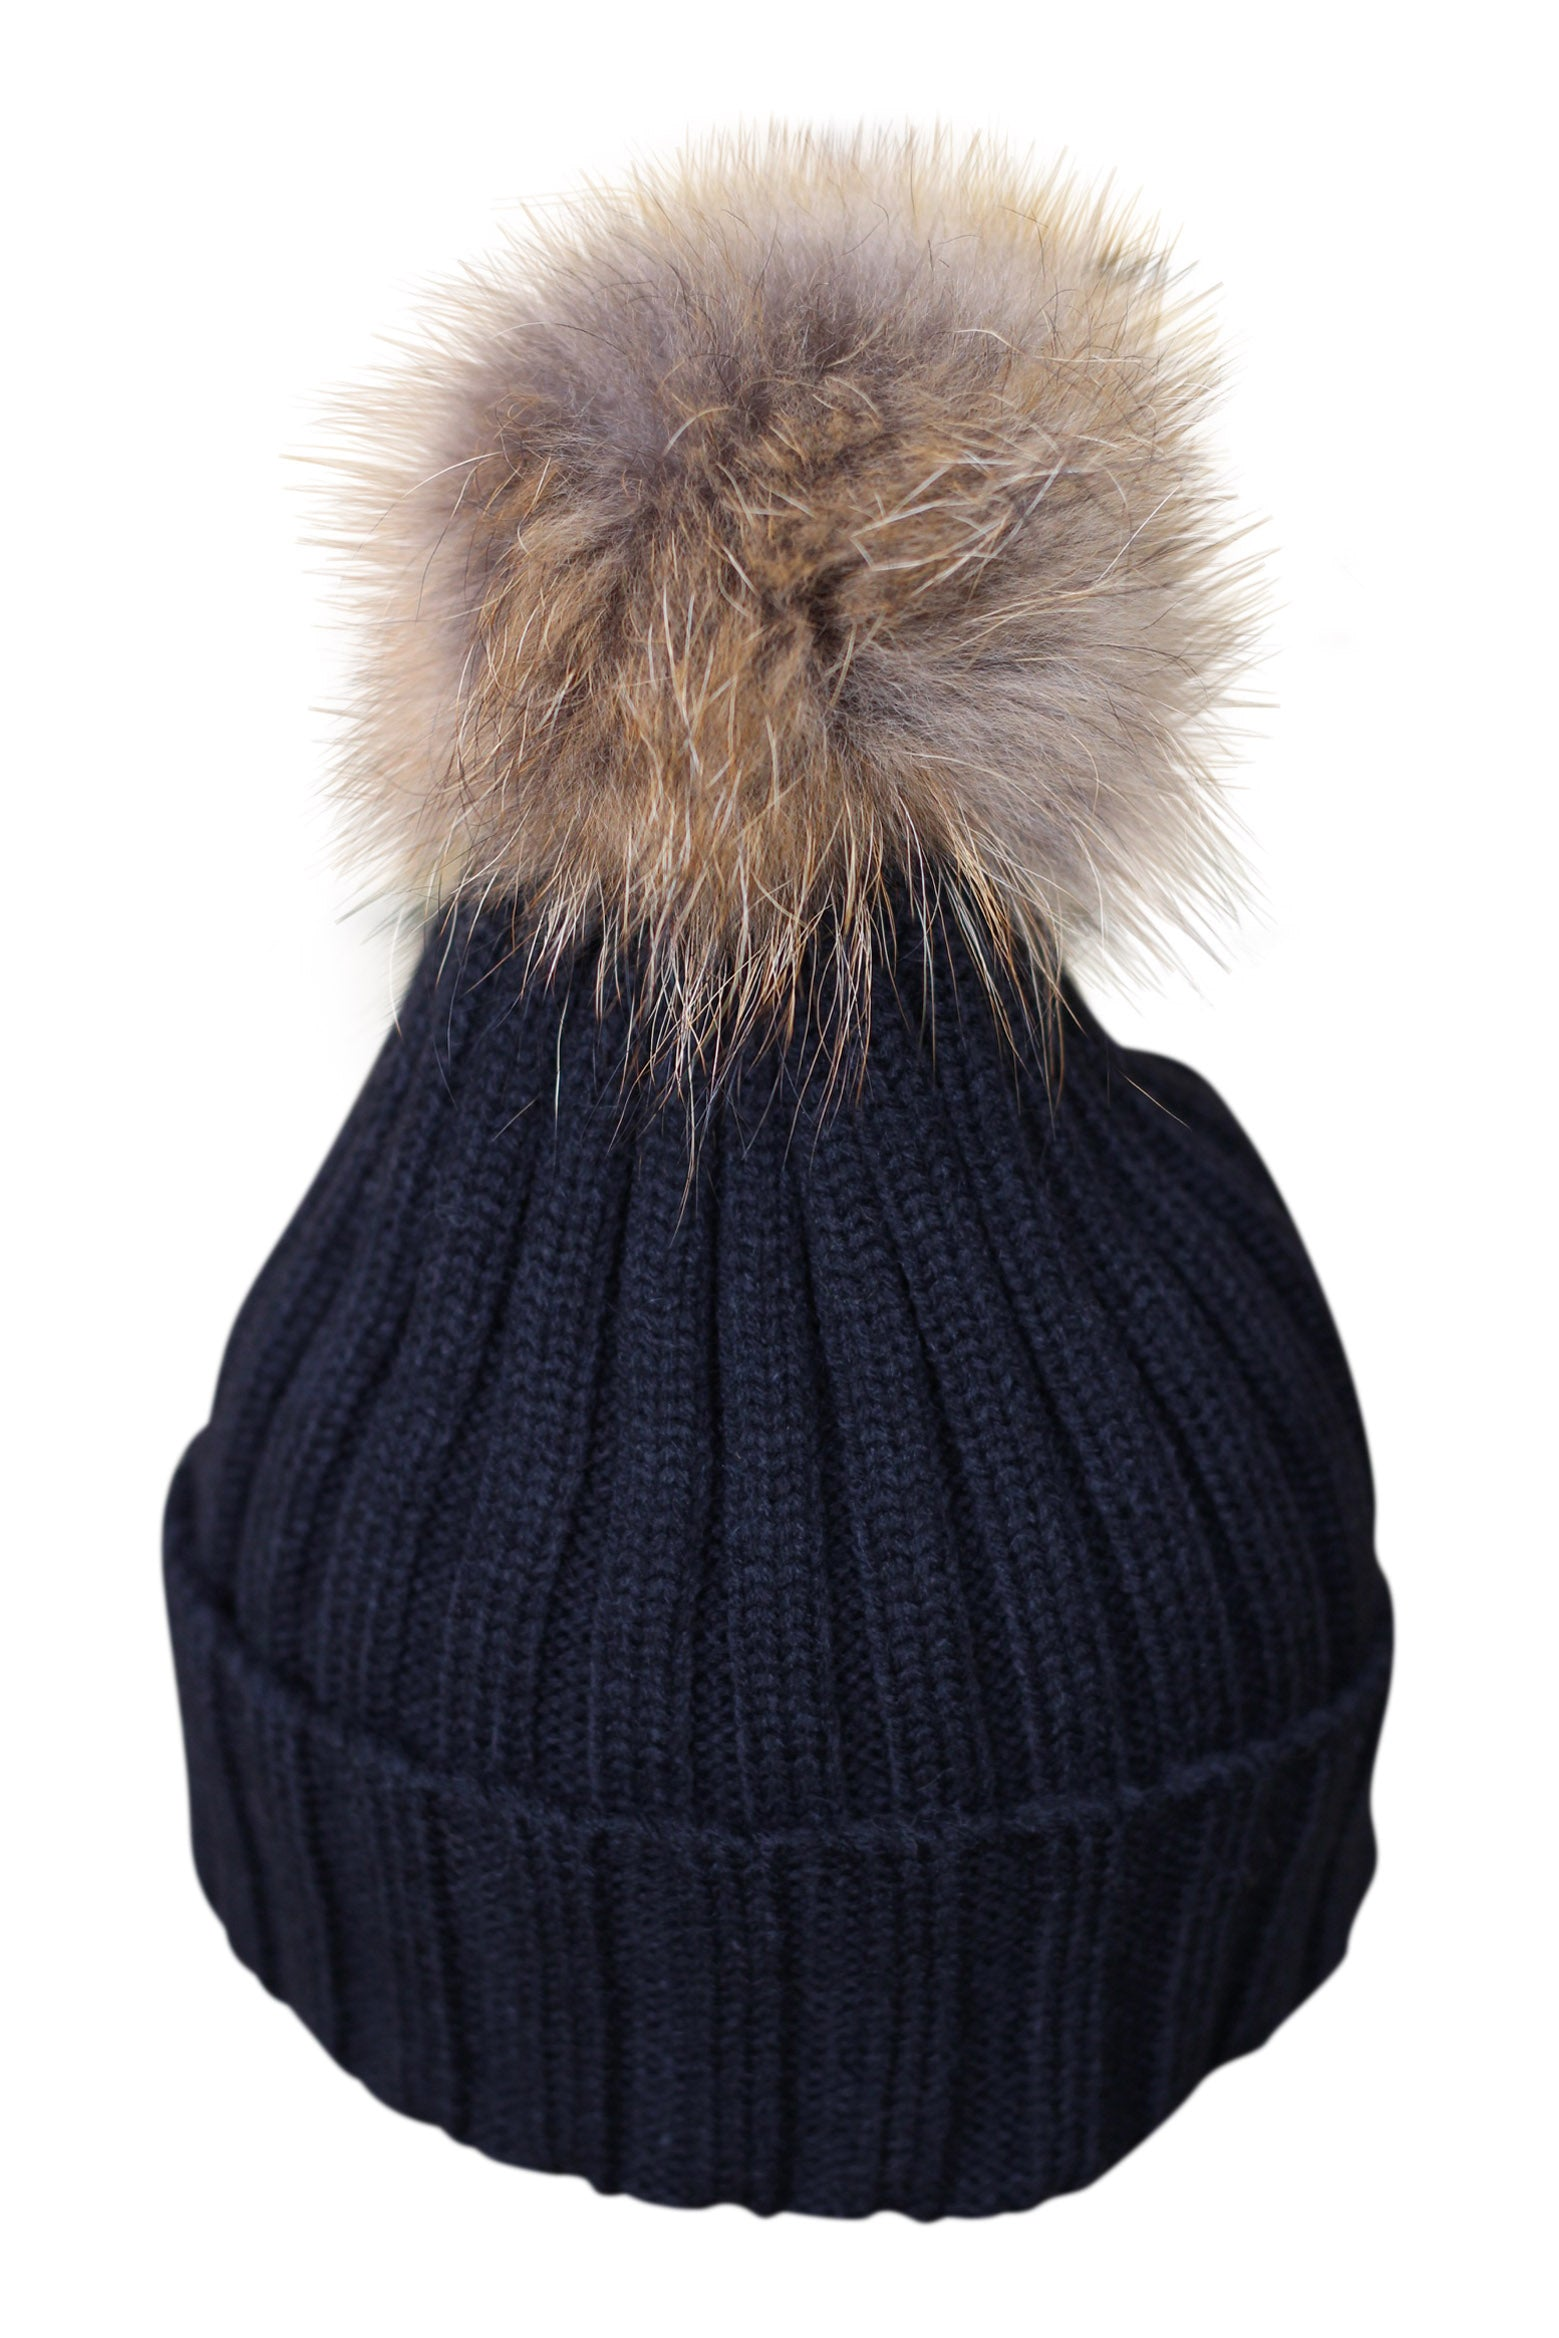 ffb0145b173 Black Fur Bobble Hat